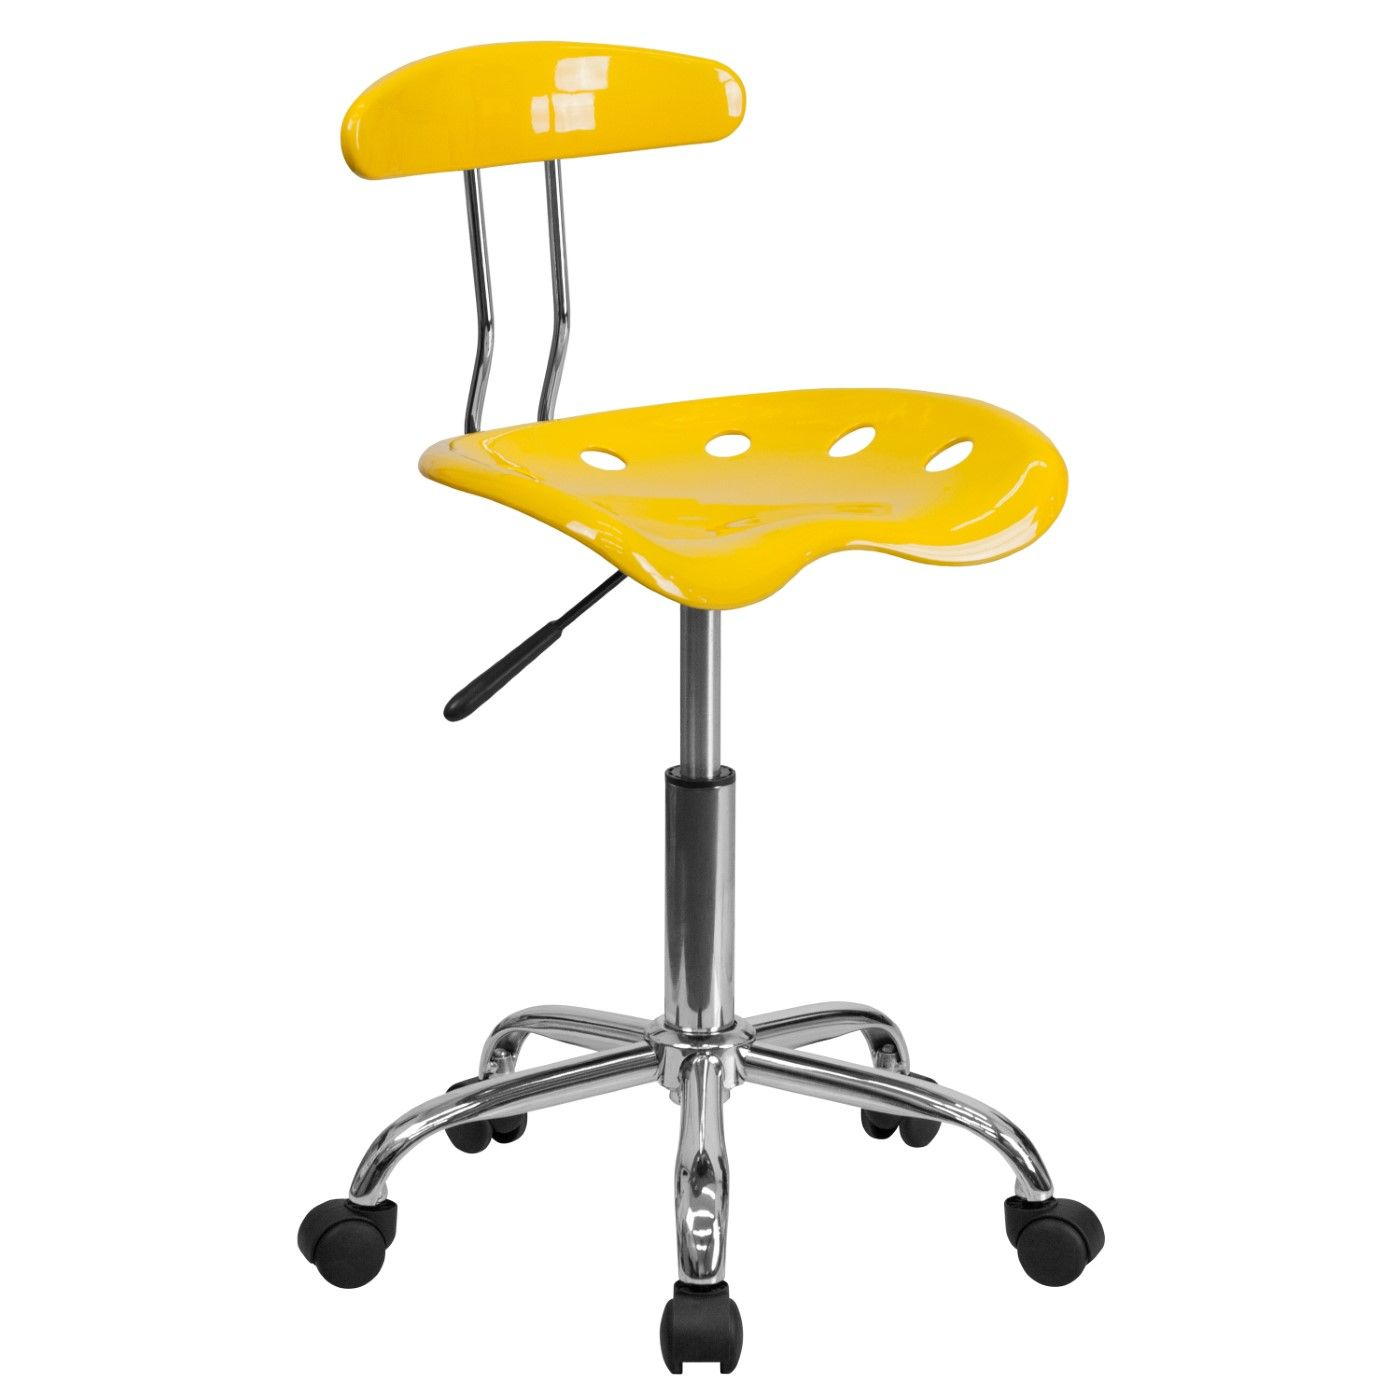 Swivel Task Chair|Adjustable Swivel Chair for Desk and Office with Tractor Seat